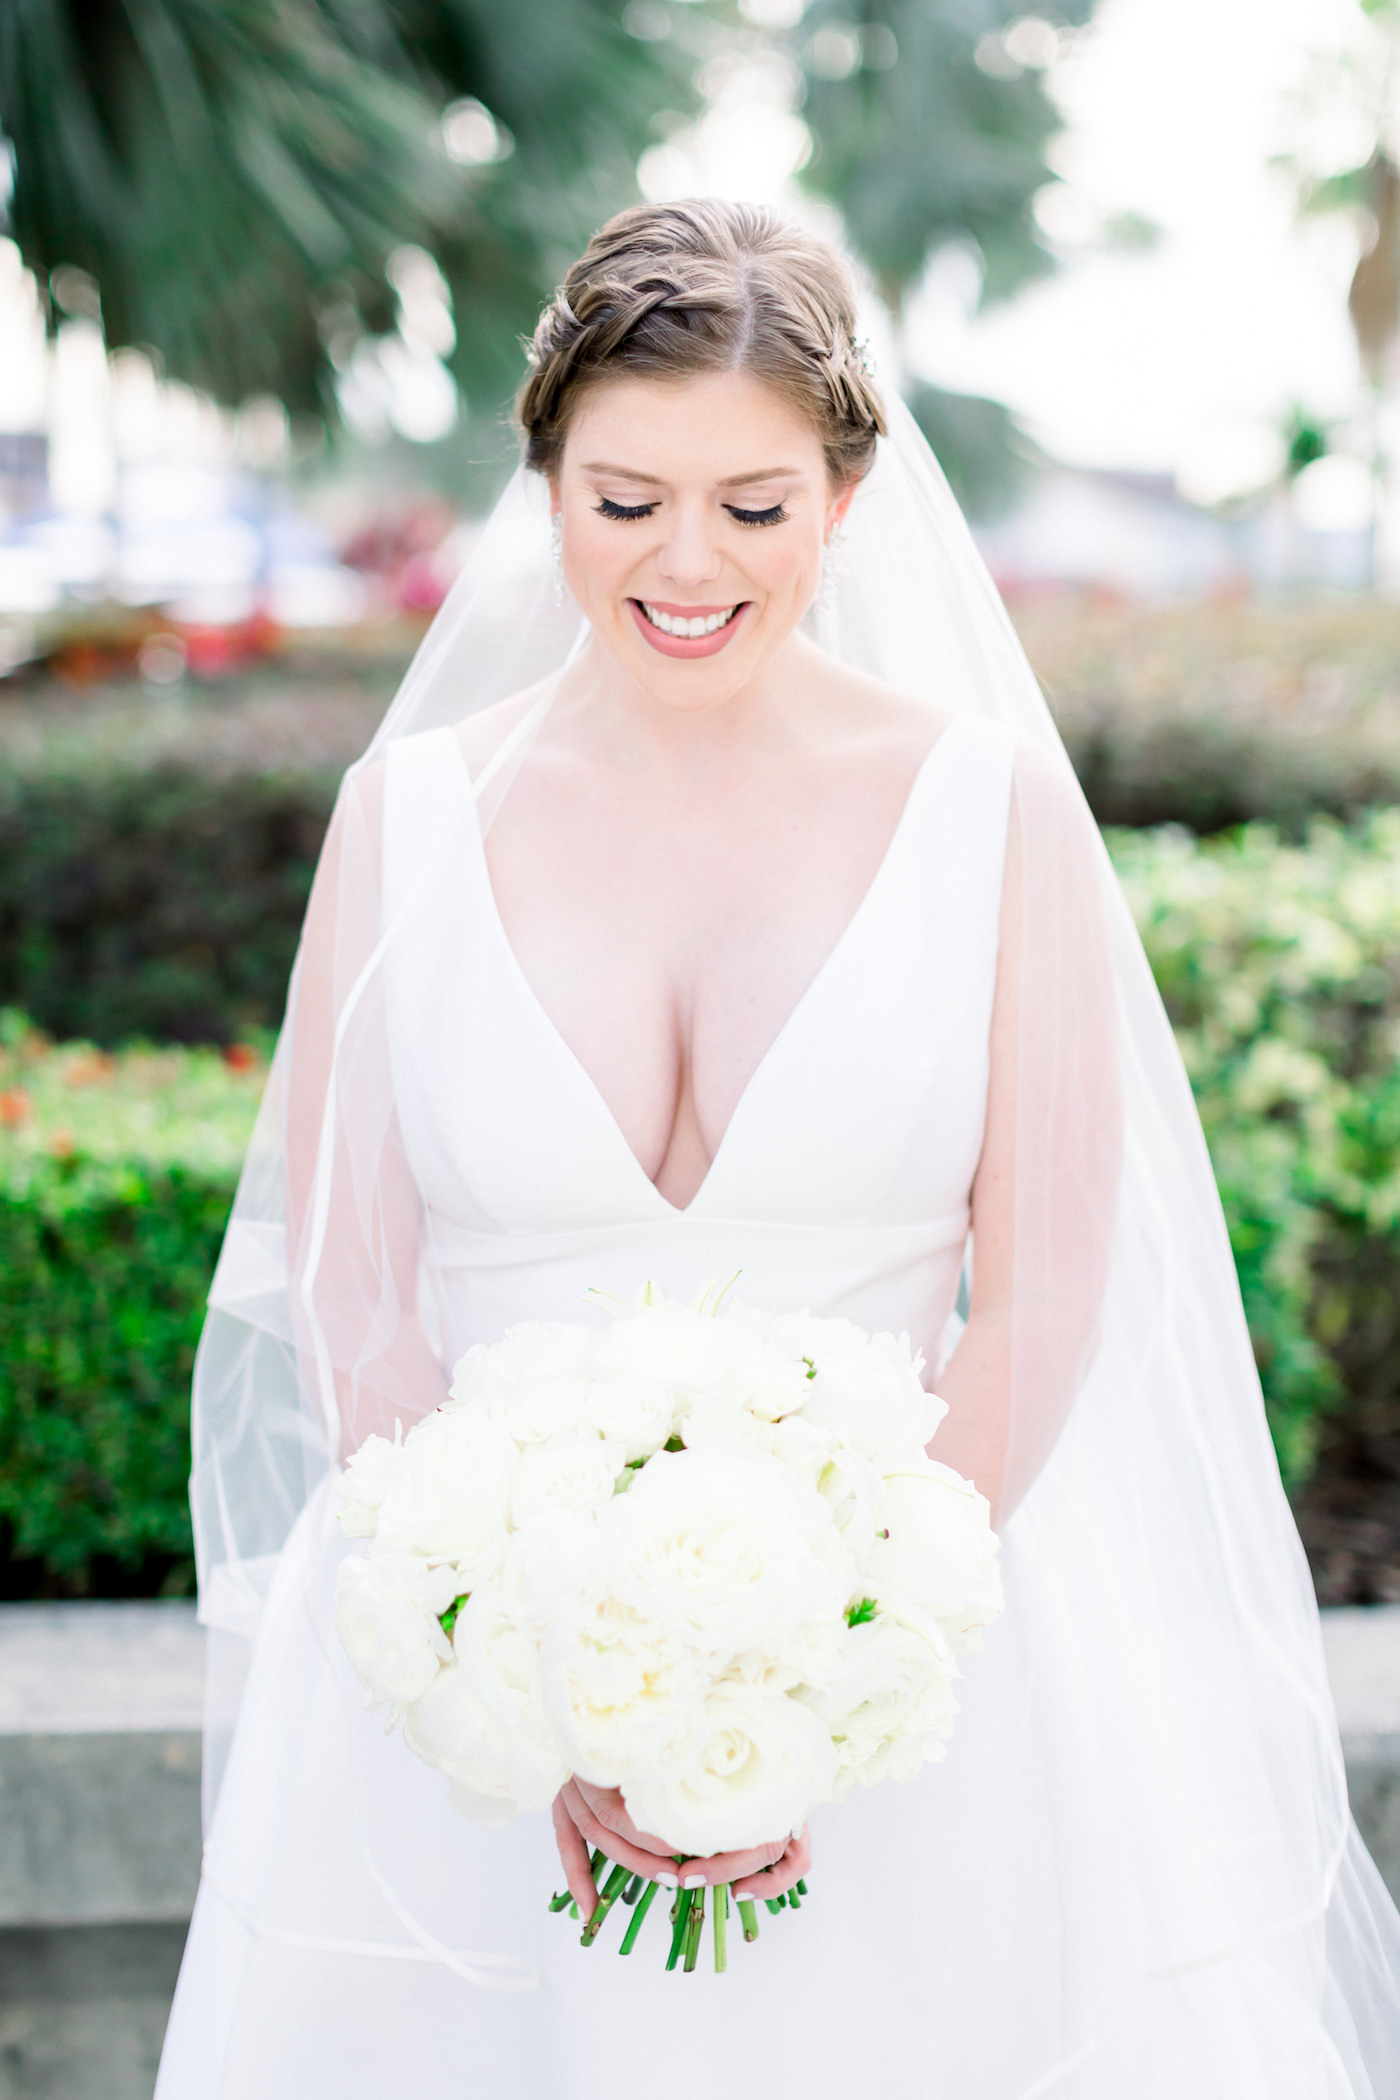 Classic Elegant Tampa Bride Beauty Portrait in Plunging V Neckline Ballgown Wtoo by Watters Wedding Dress Holding White Roses Floral Bouquet, Braided Updo, Long Veil | Wedding Photographer Shauna and Jordon Photography | Wedding Hair and Makeup Femme Akoi Beauty Studio | Wedding Planner UNIQUE Weddings + Events